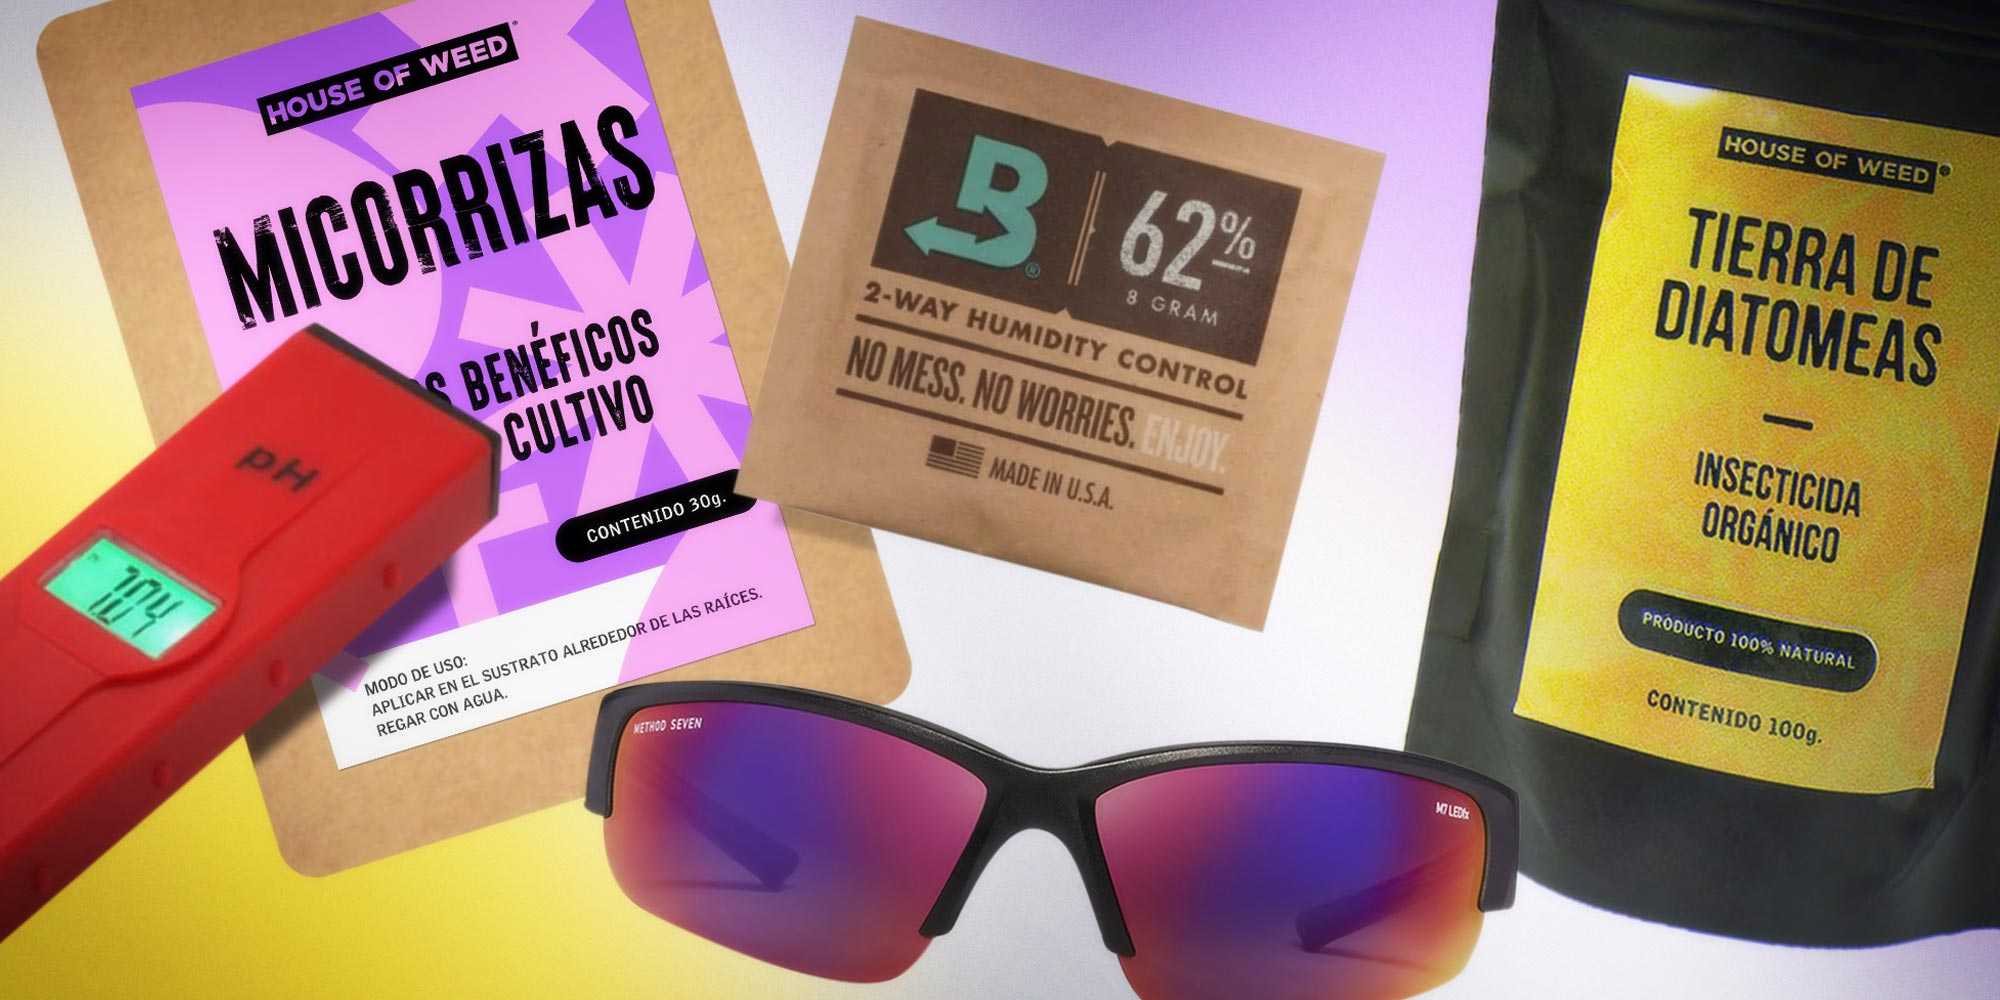 productos cultivo house of weed